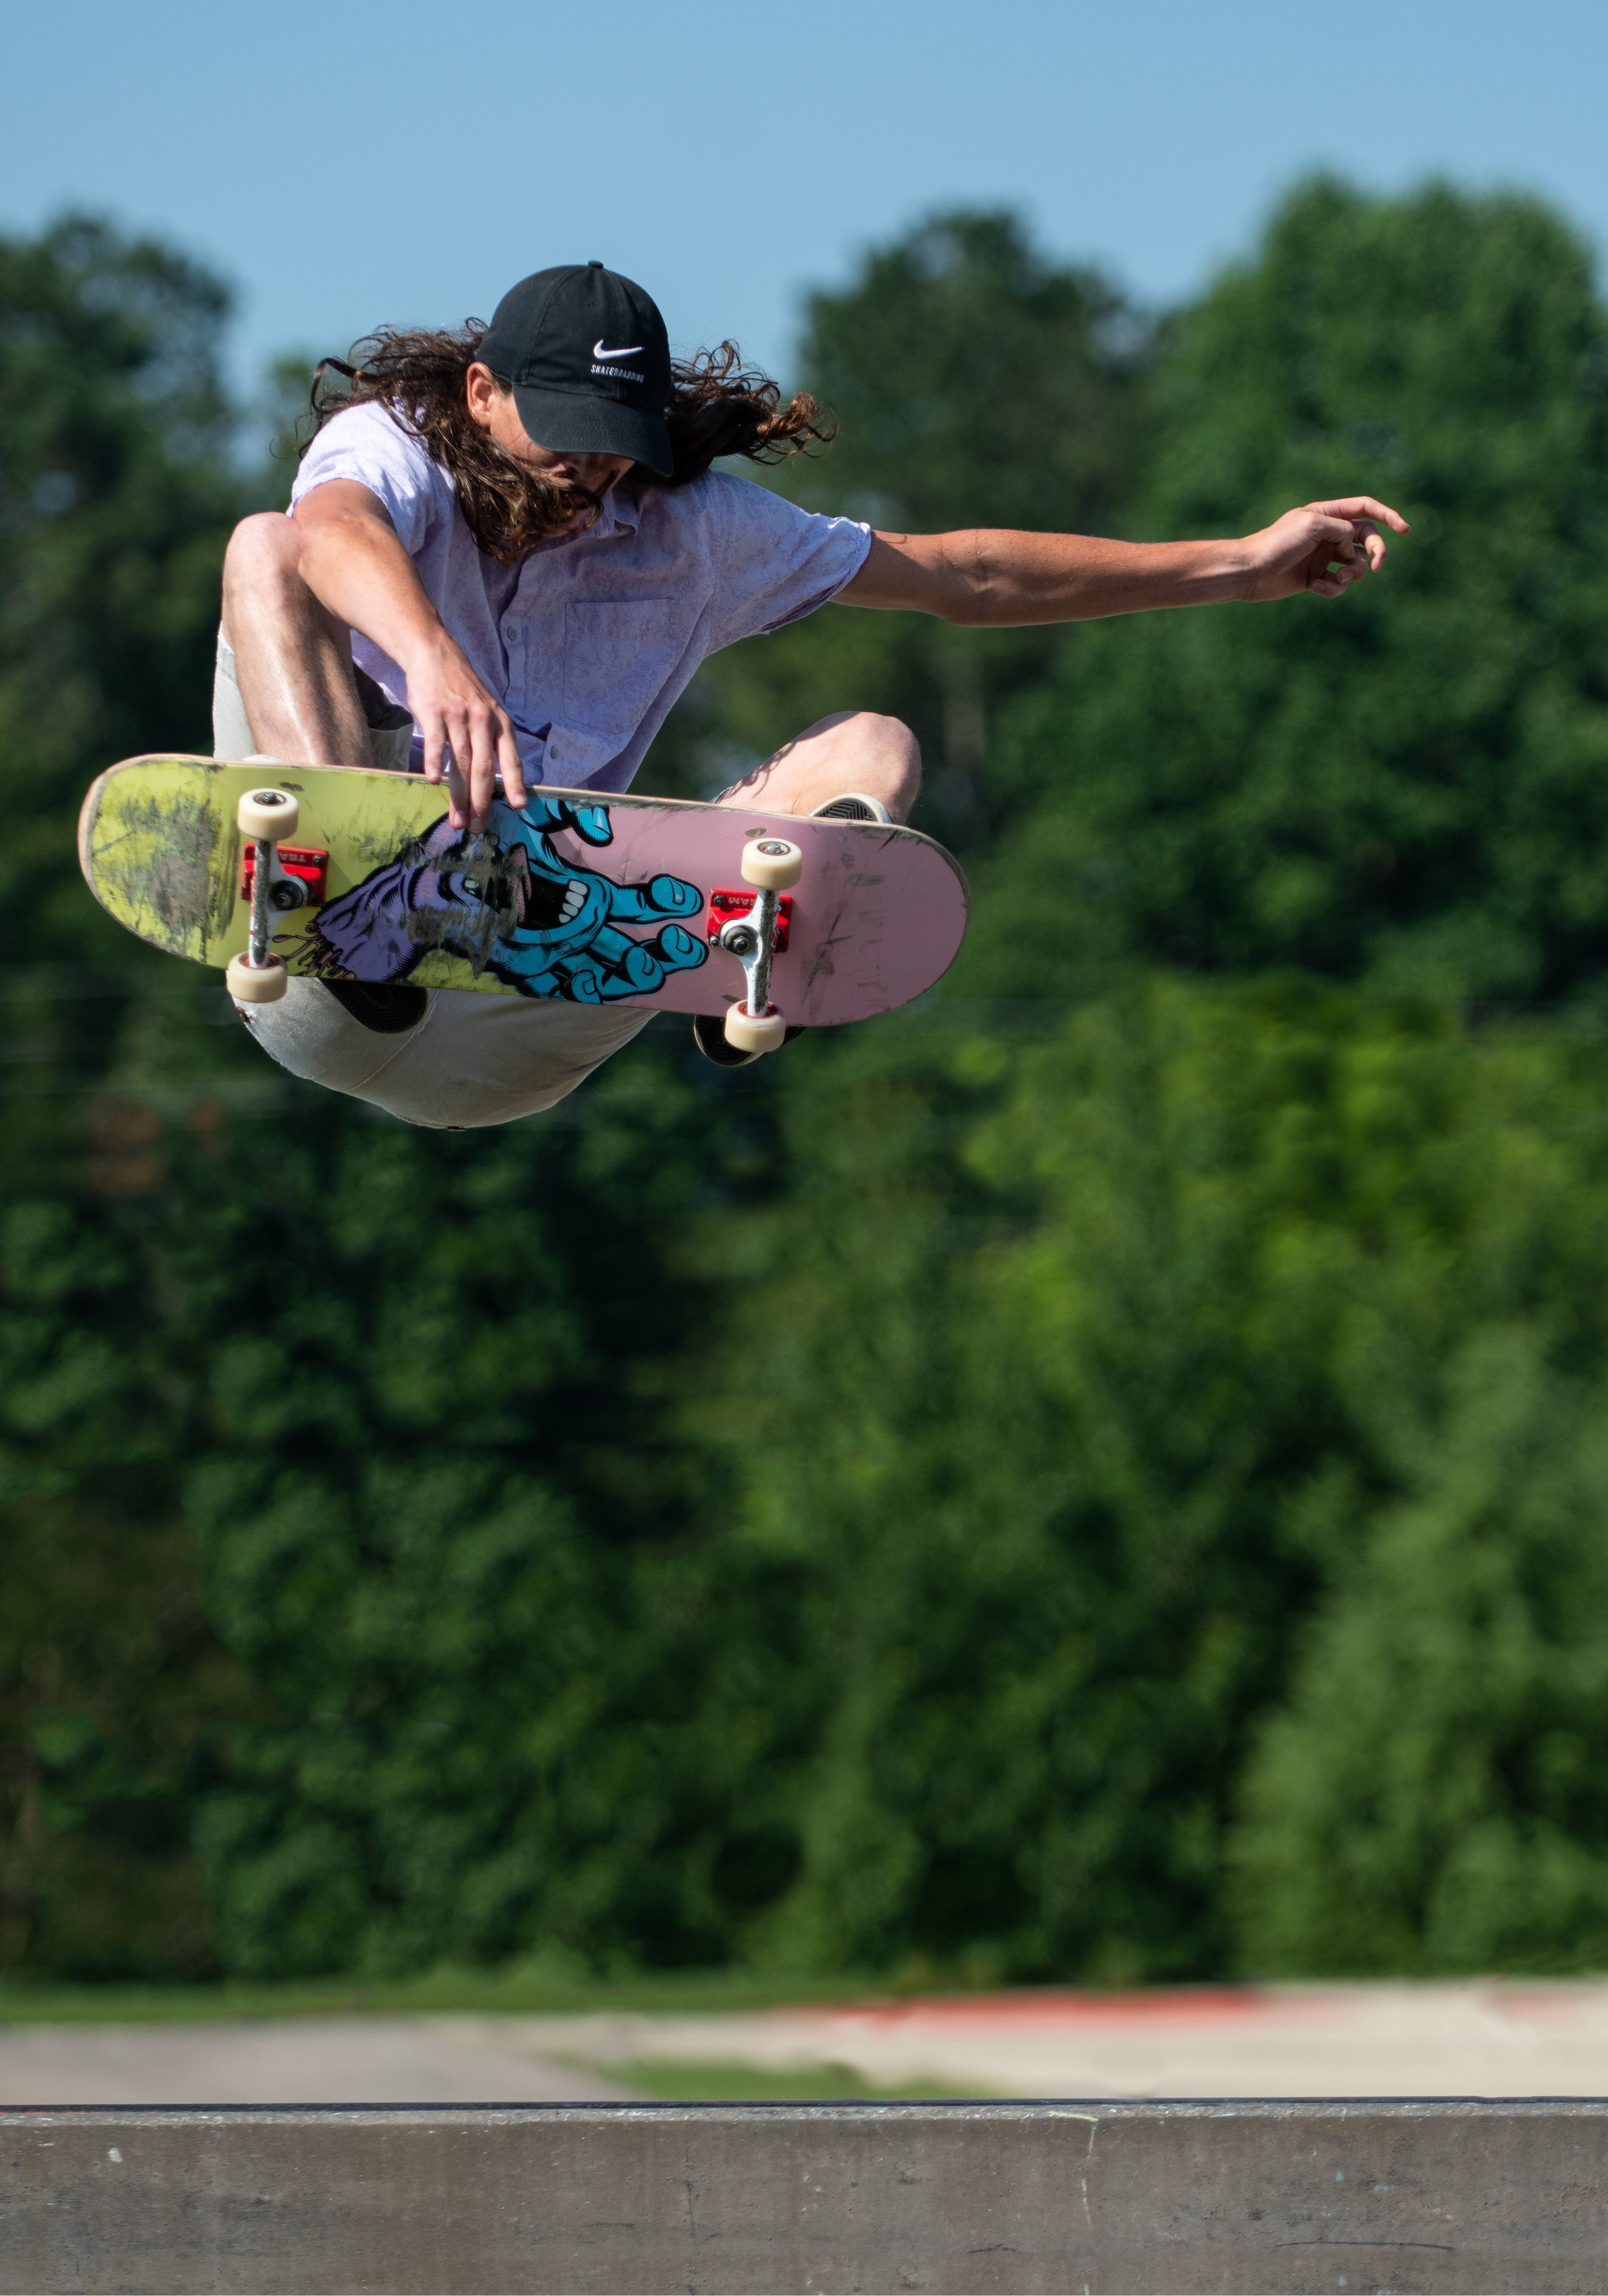 Swift Cantrell Skateboard Park action.